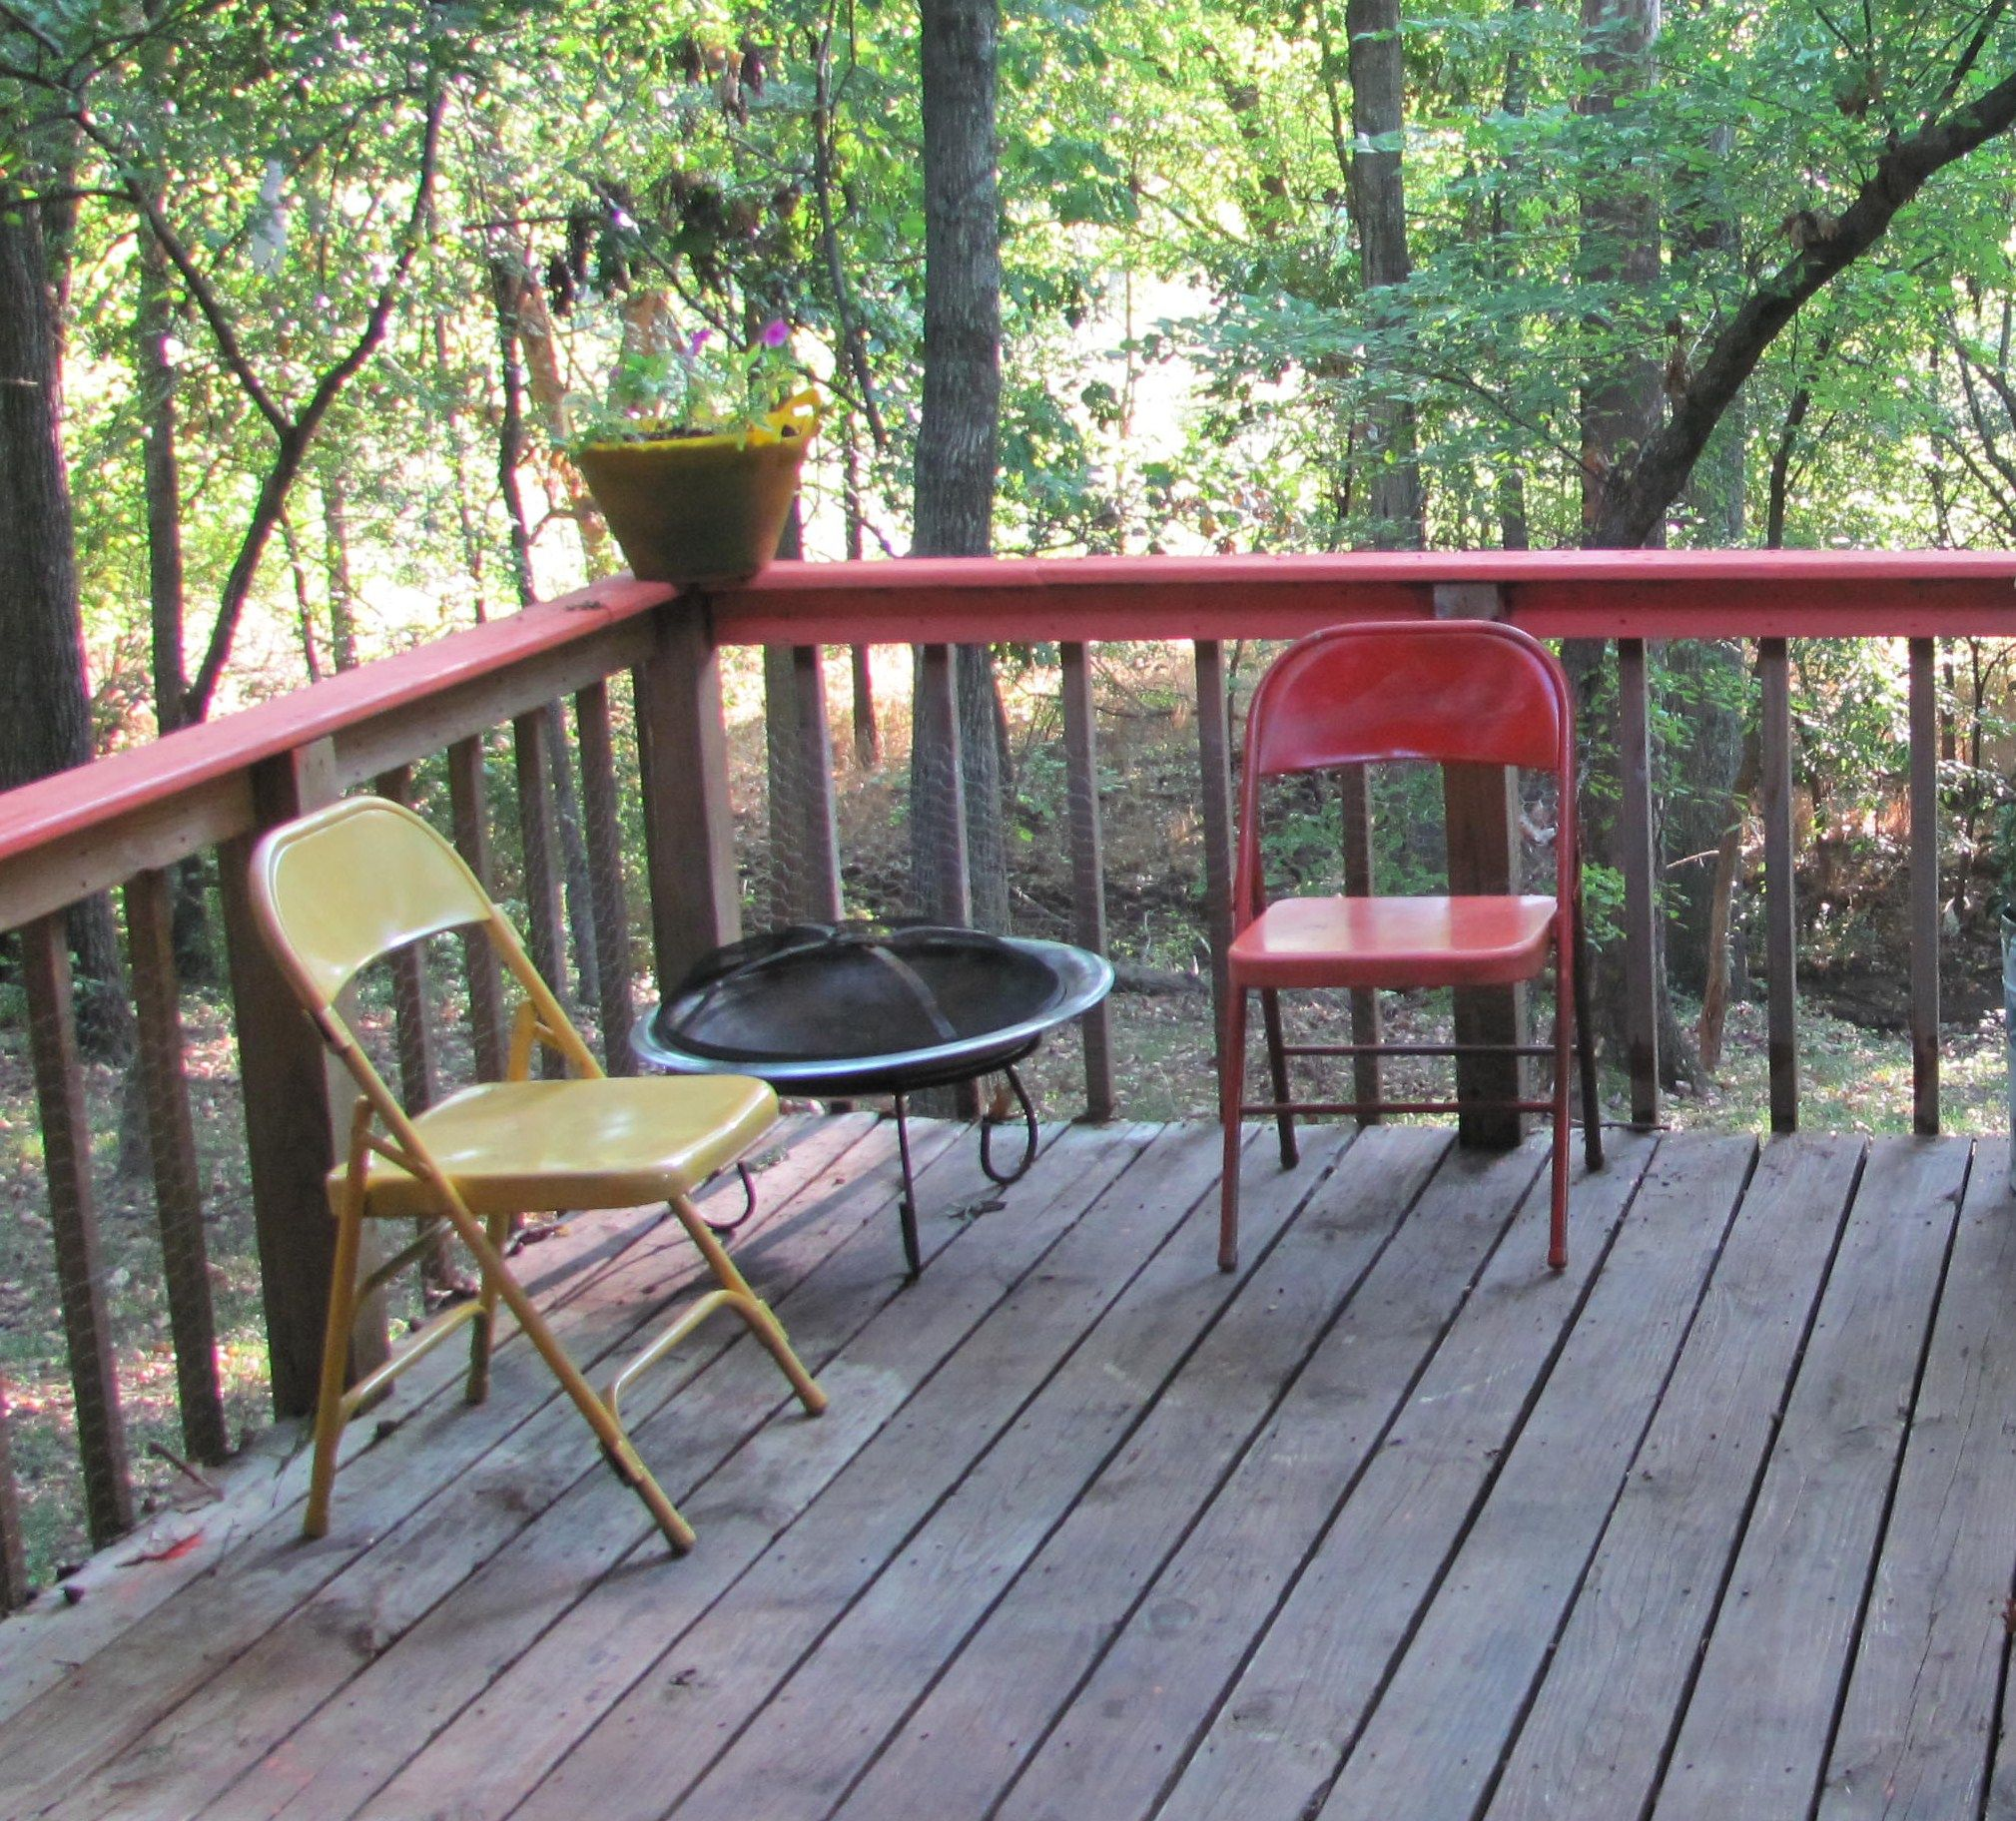 Need extra outdoor furniture Save $ Spray paint metal folding